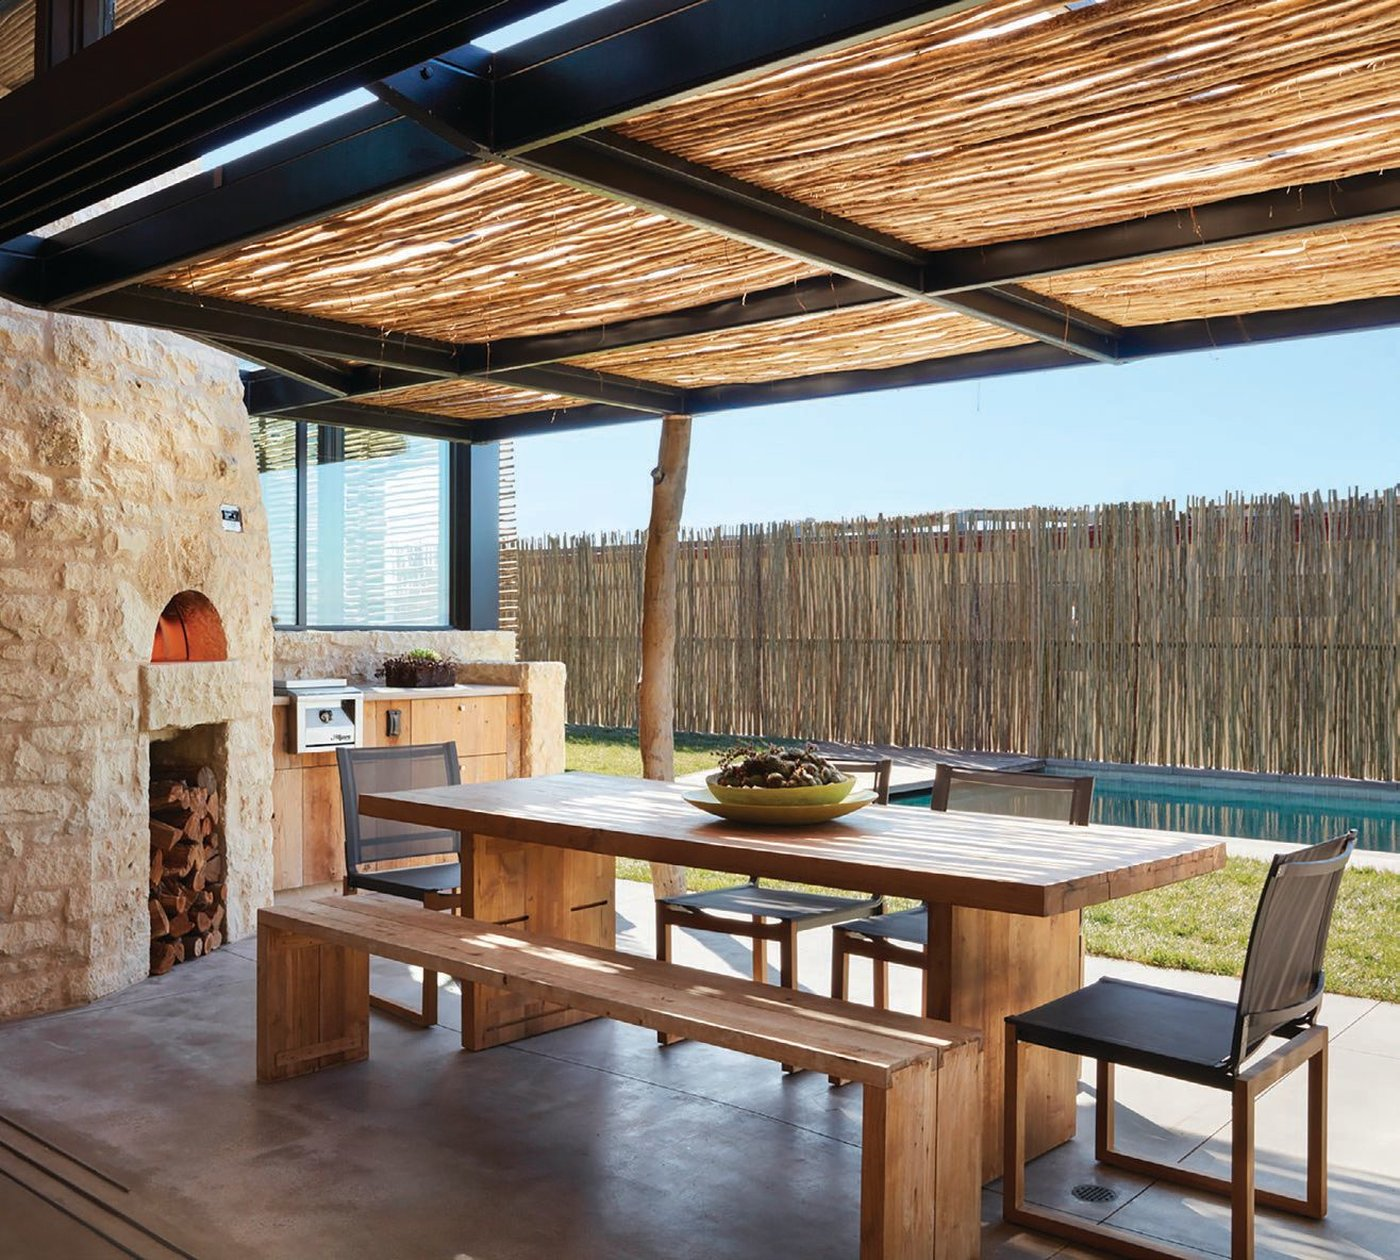 A SoCal surfer family with South African roots got the outdoor kitchen of their dreams (including traditional wood-fi red barbecue or braai) courtesy of KAA Design. PHOTO BY ROGER DAVIES